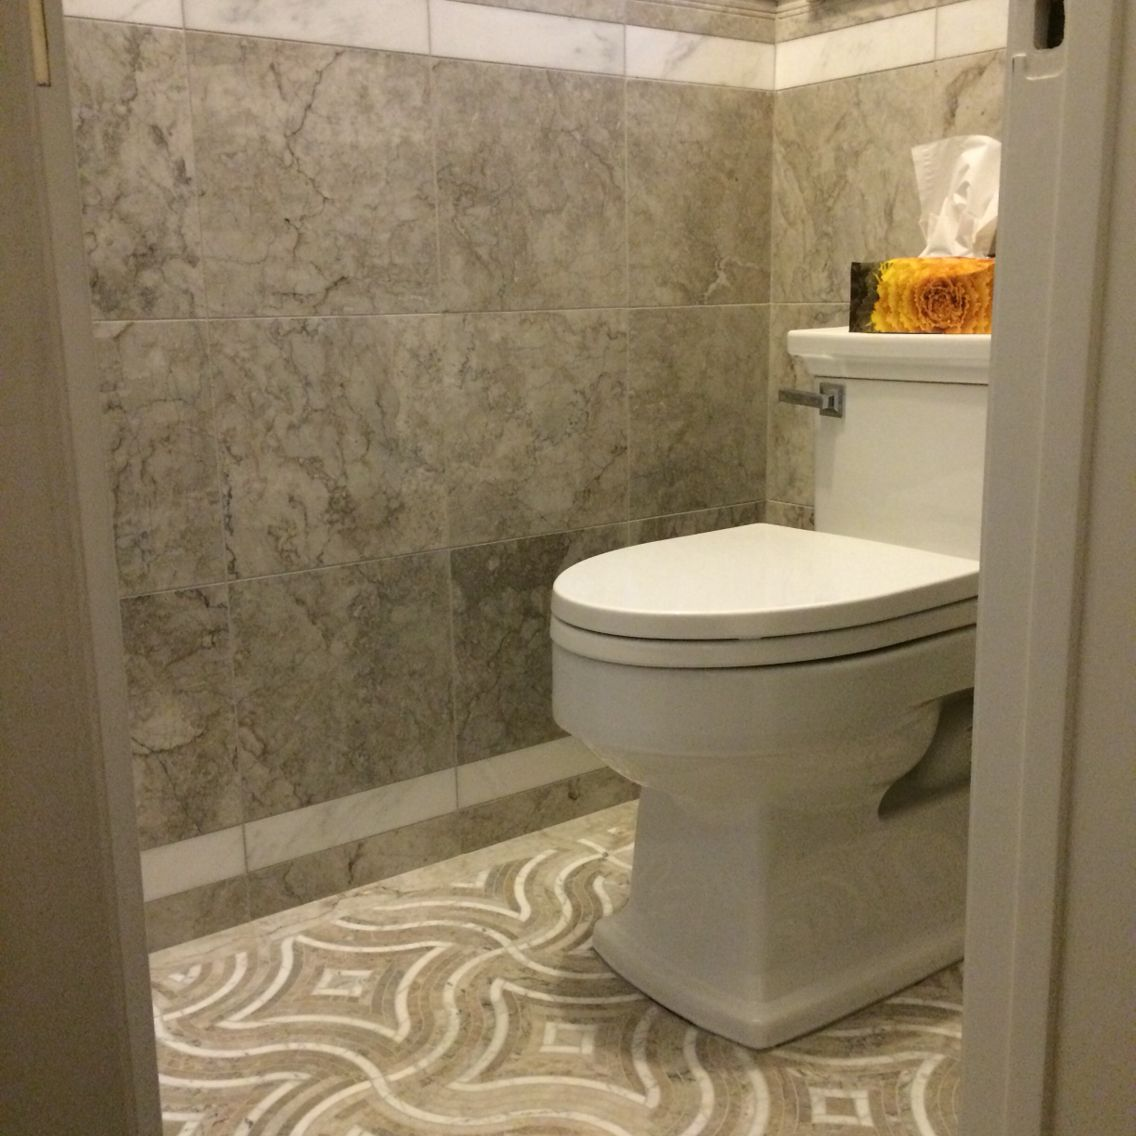 Water jet marble tiles on the floor with exotic grey marble tiles tile dailygadgetfo Image collections